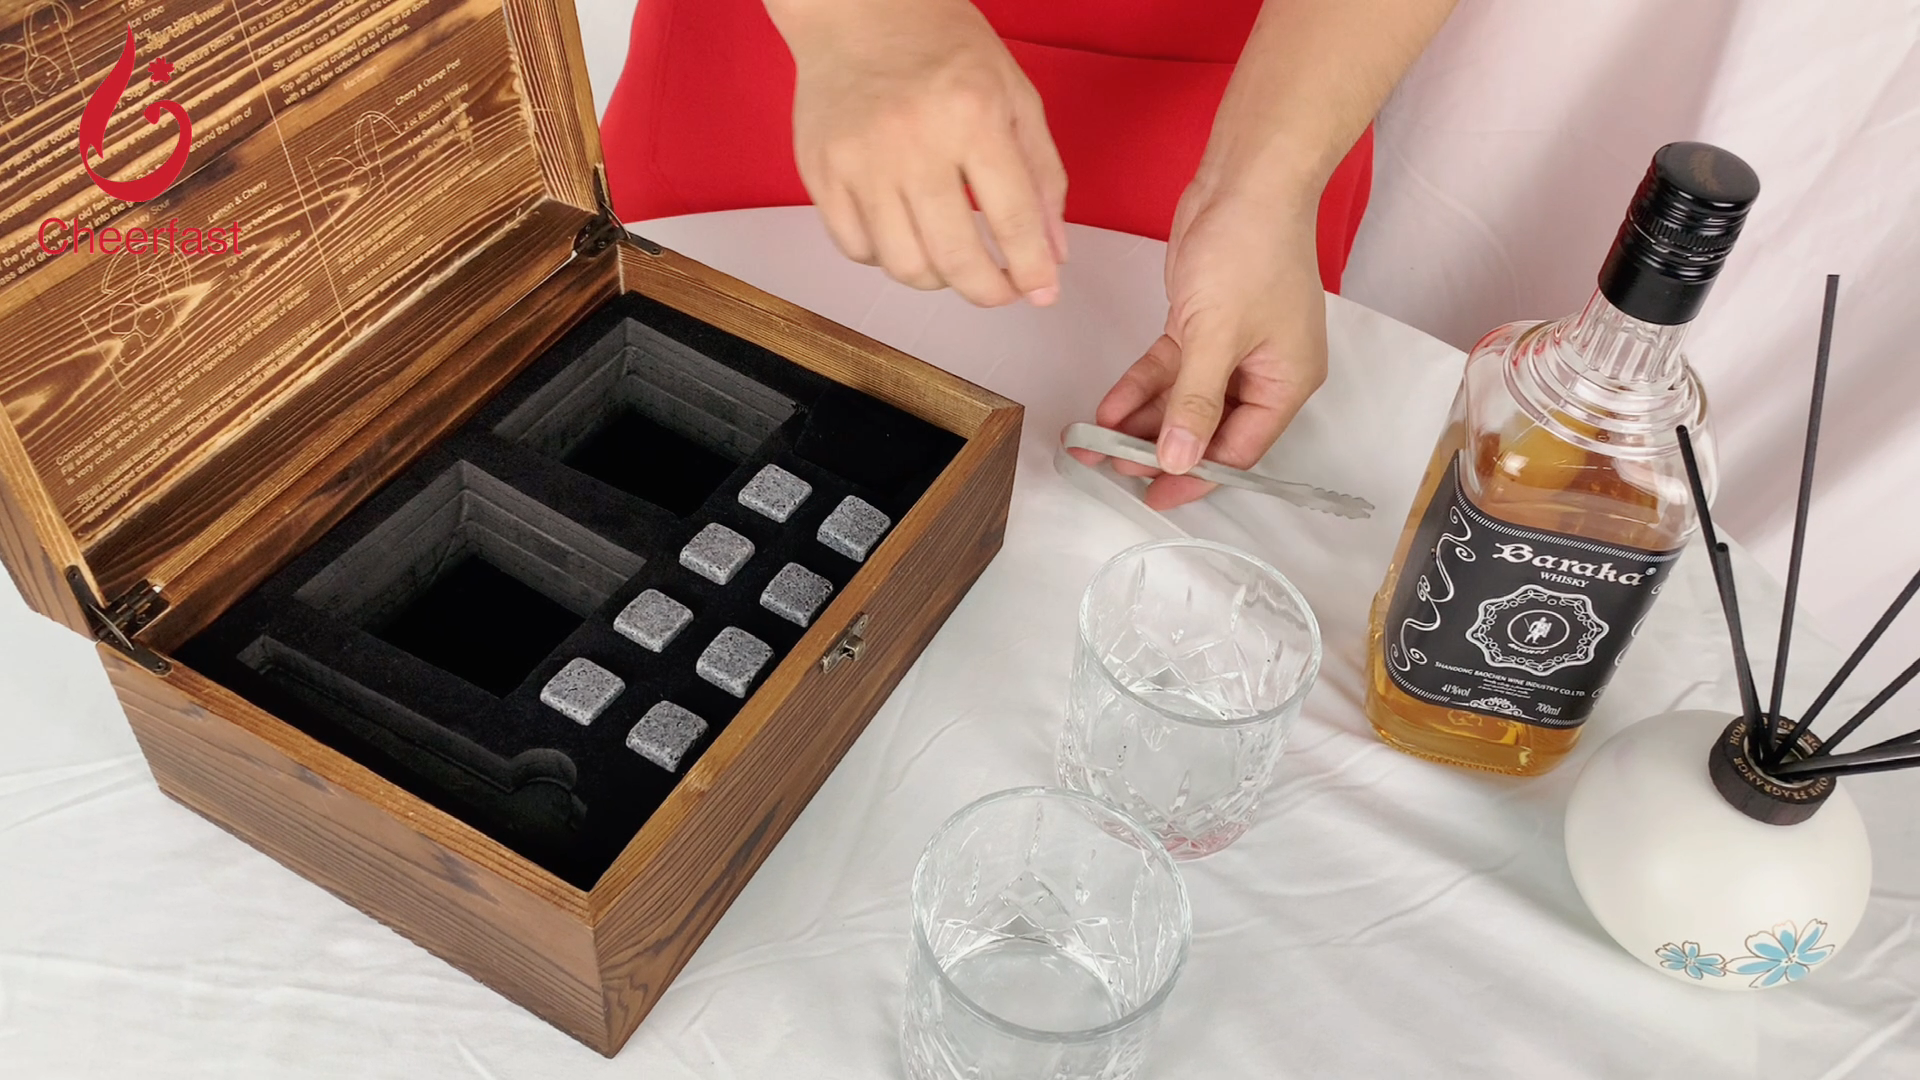 Sample order acceptable wooden box whiskey stones gift set with 8 glasses cooling stone